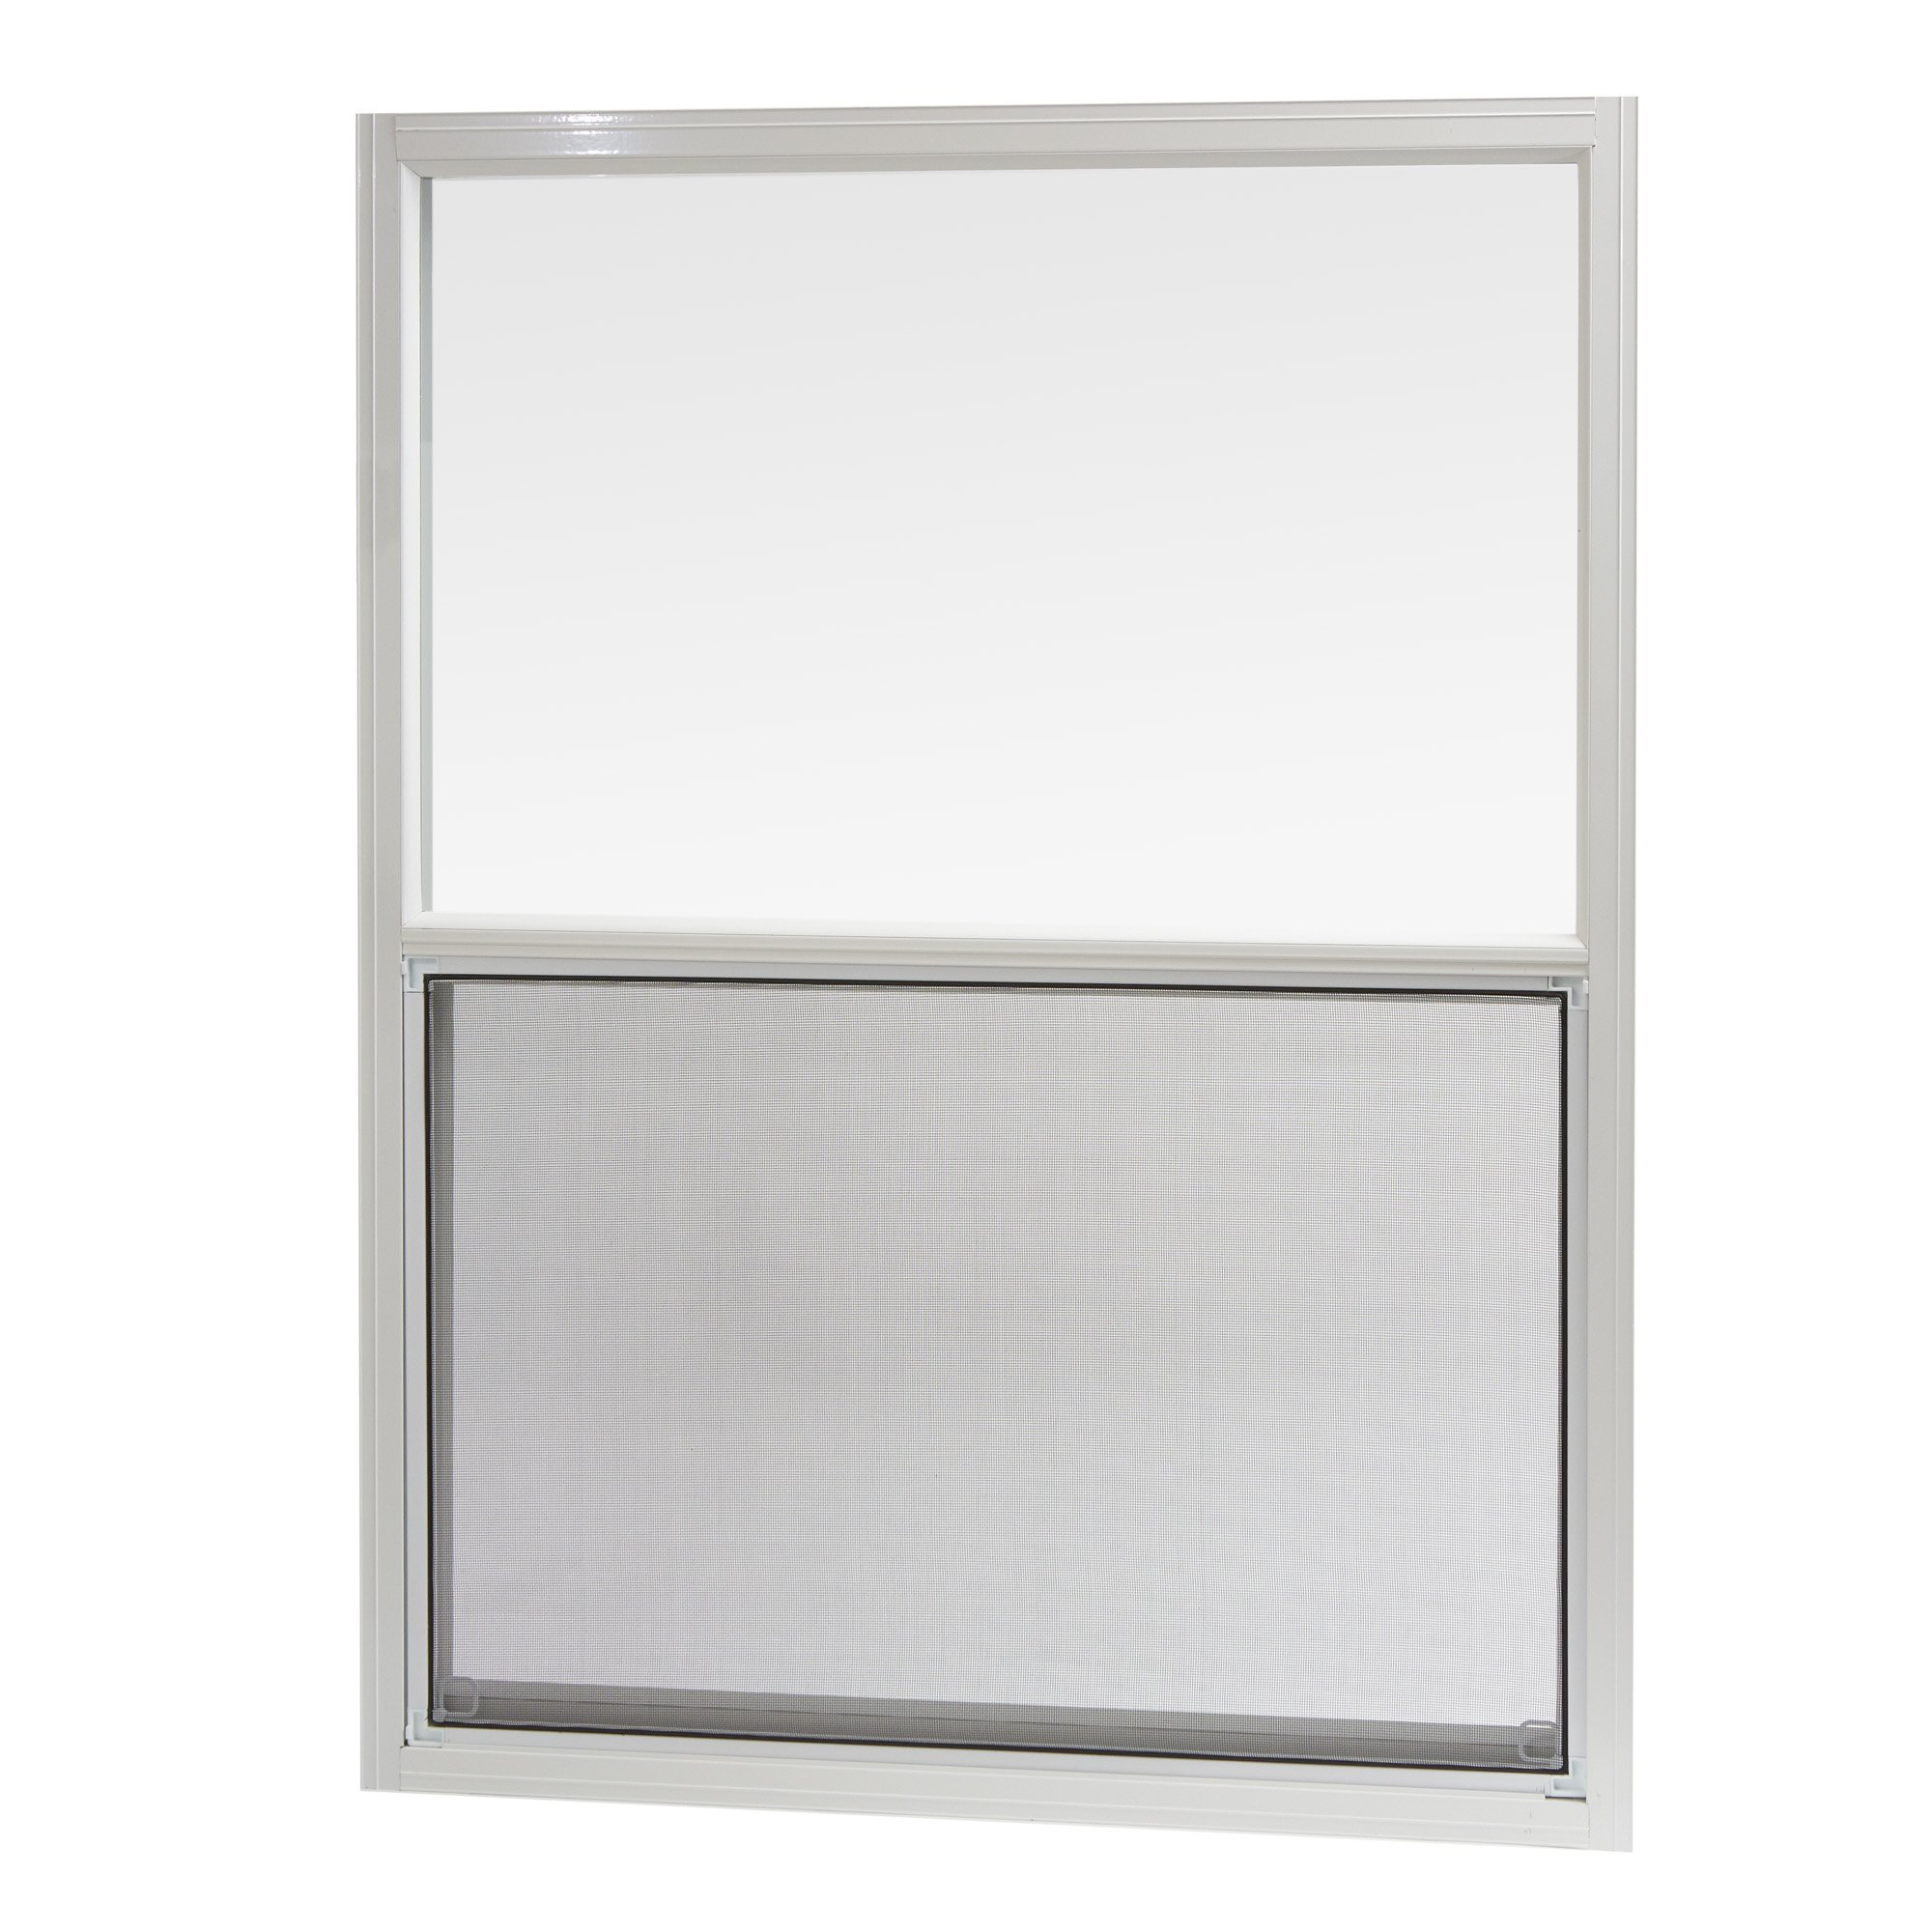 Park Ridge AMHW3040PR Aluminum Mobile Home Single Hung Window 30 Inch x 40 Inch, White